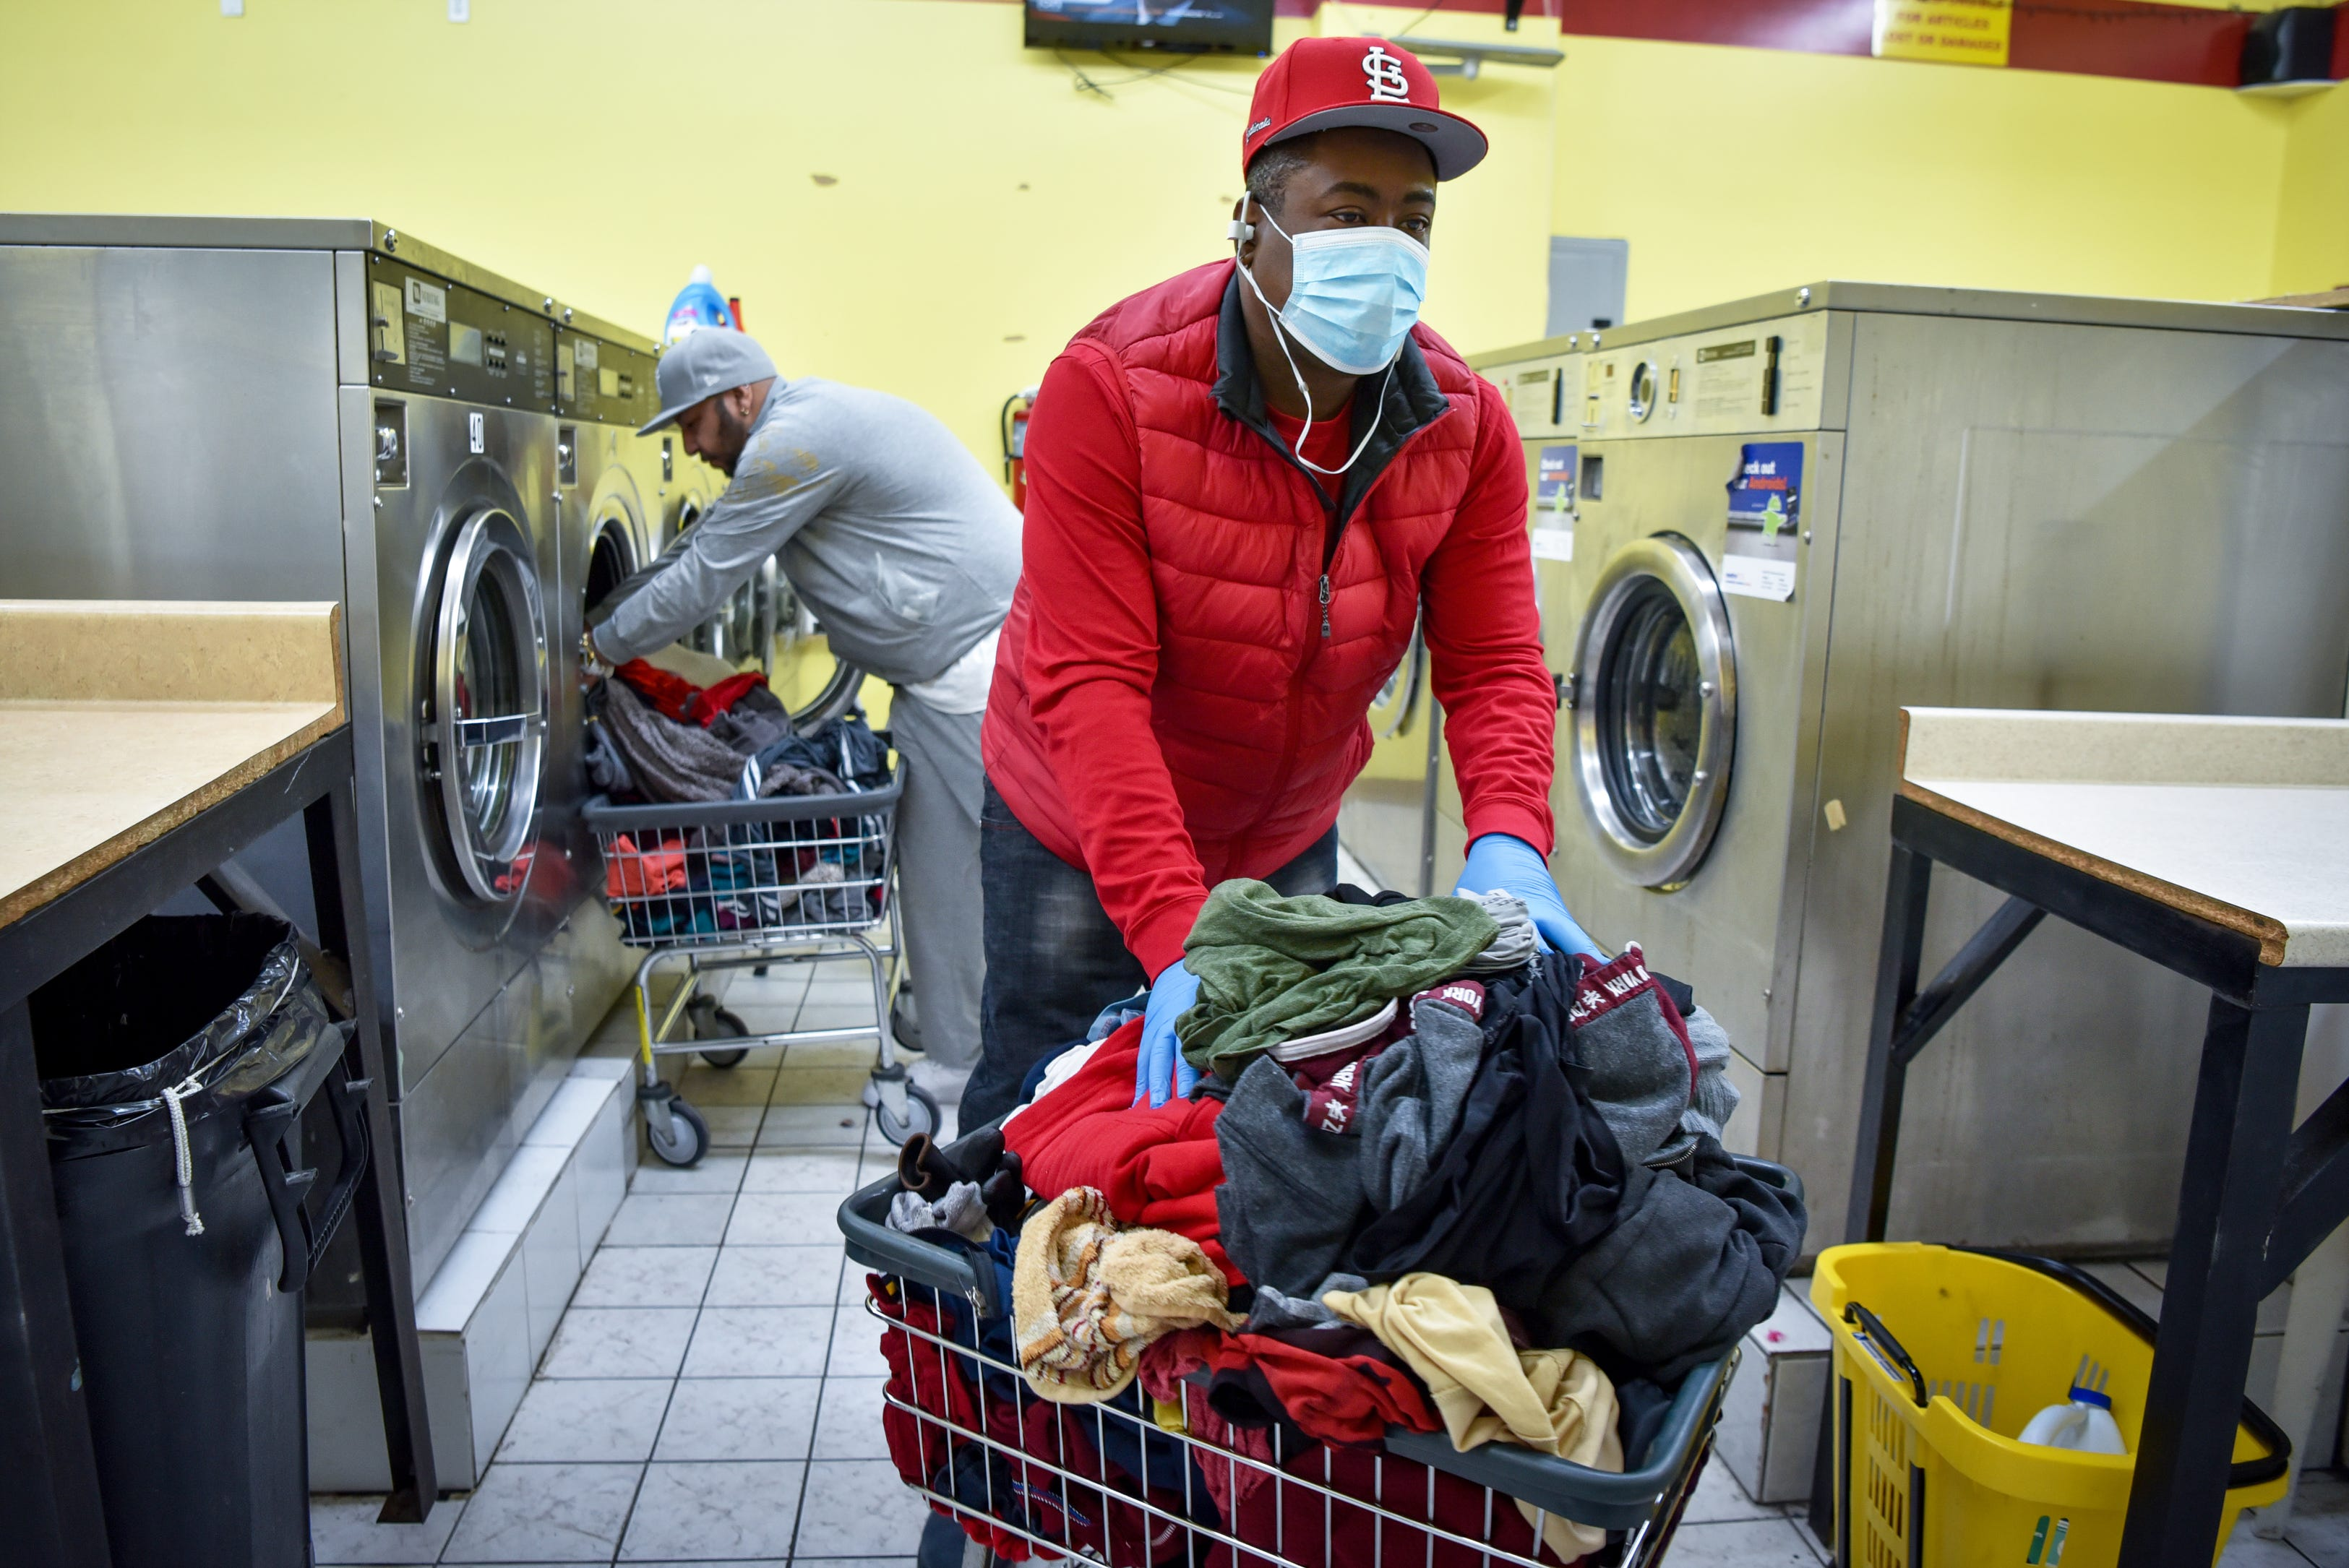 Daily routines must continue, Sammy Irizarry of Passaic, wears a mask and gloves as a precaution against COVID-19 while washing his clothes at Tri-City Laundromat in Passaic, N.J. on March 22, 2020. Irizarry has preexisting health conditions, including diabetes and high blood pressure and is still working.